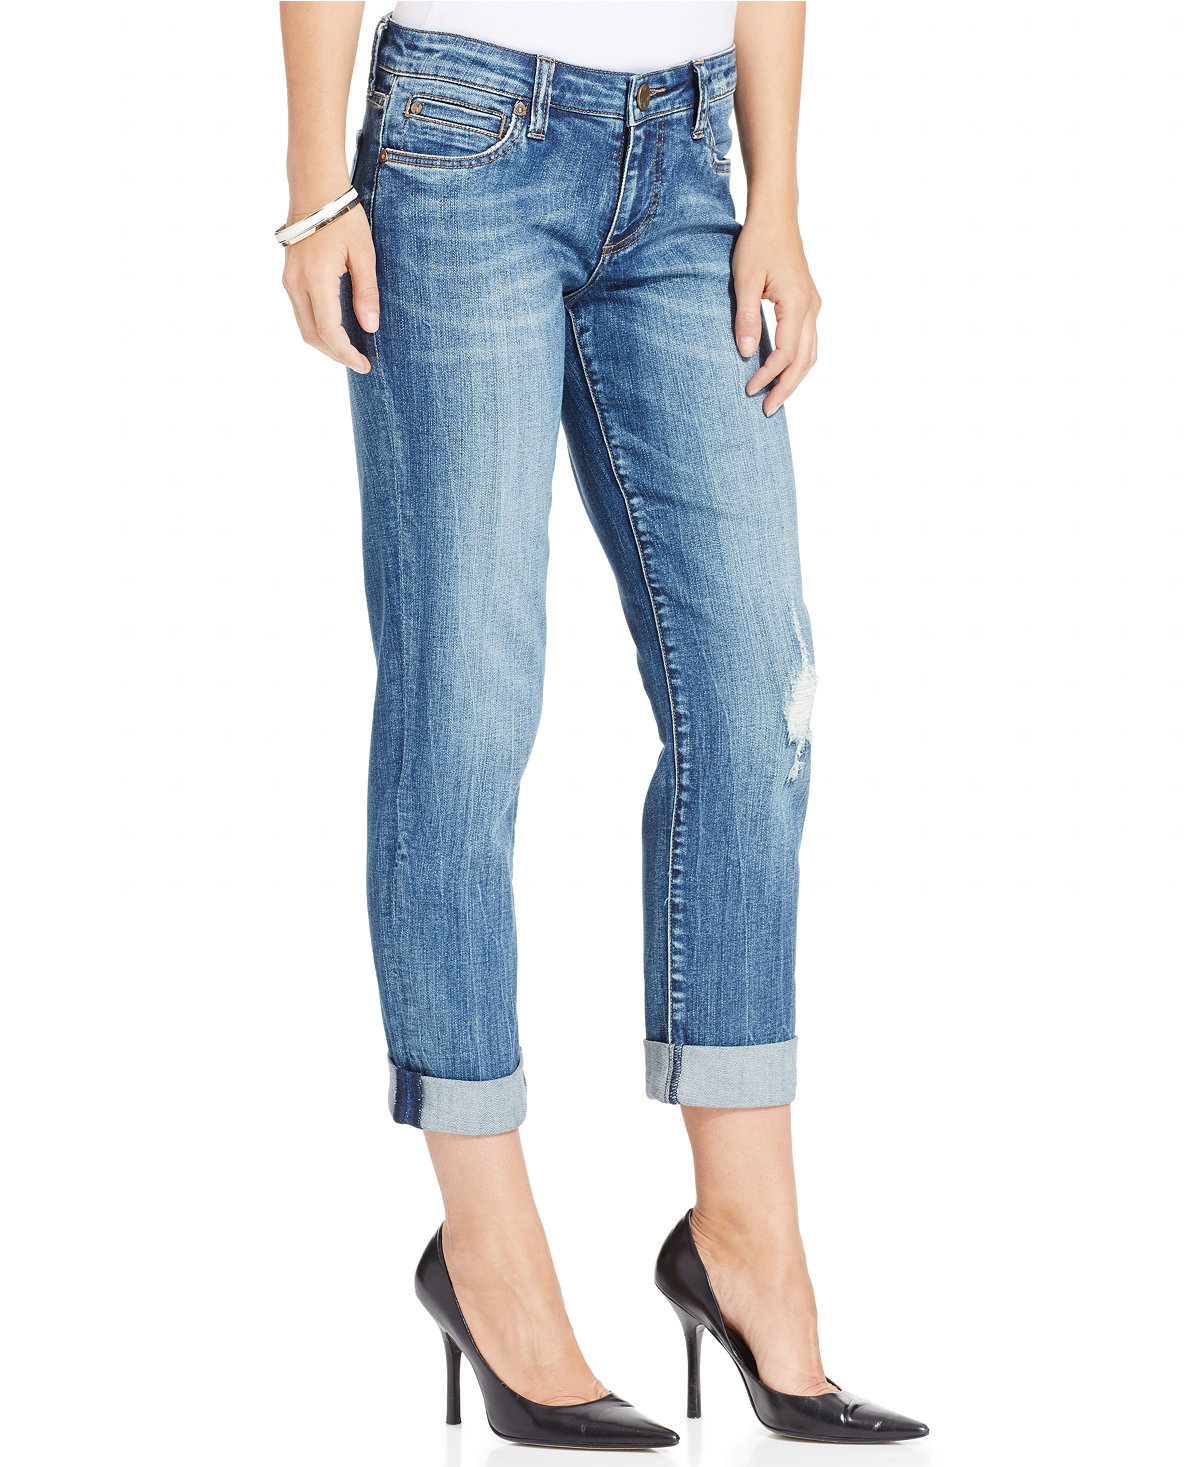 c05b1254f99a7 The Best Jeans for Women with Large Thighs